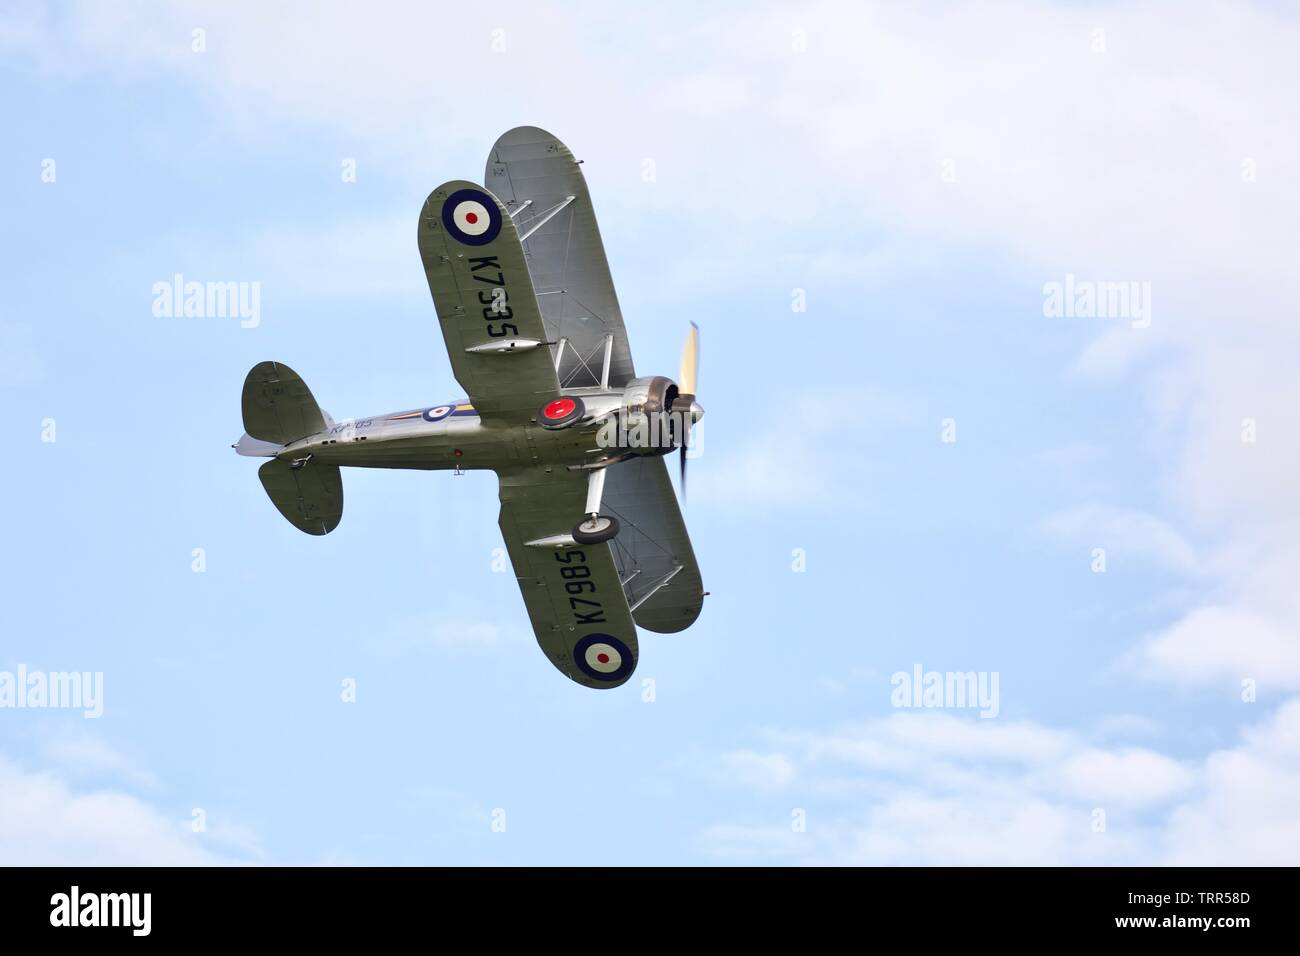 1938 Gloster Gladiator part of the Shuttleworth Collection performing at the 2019 Air Festival at Old Warden - Stock Image